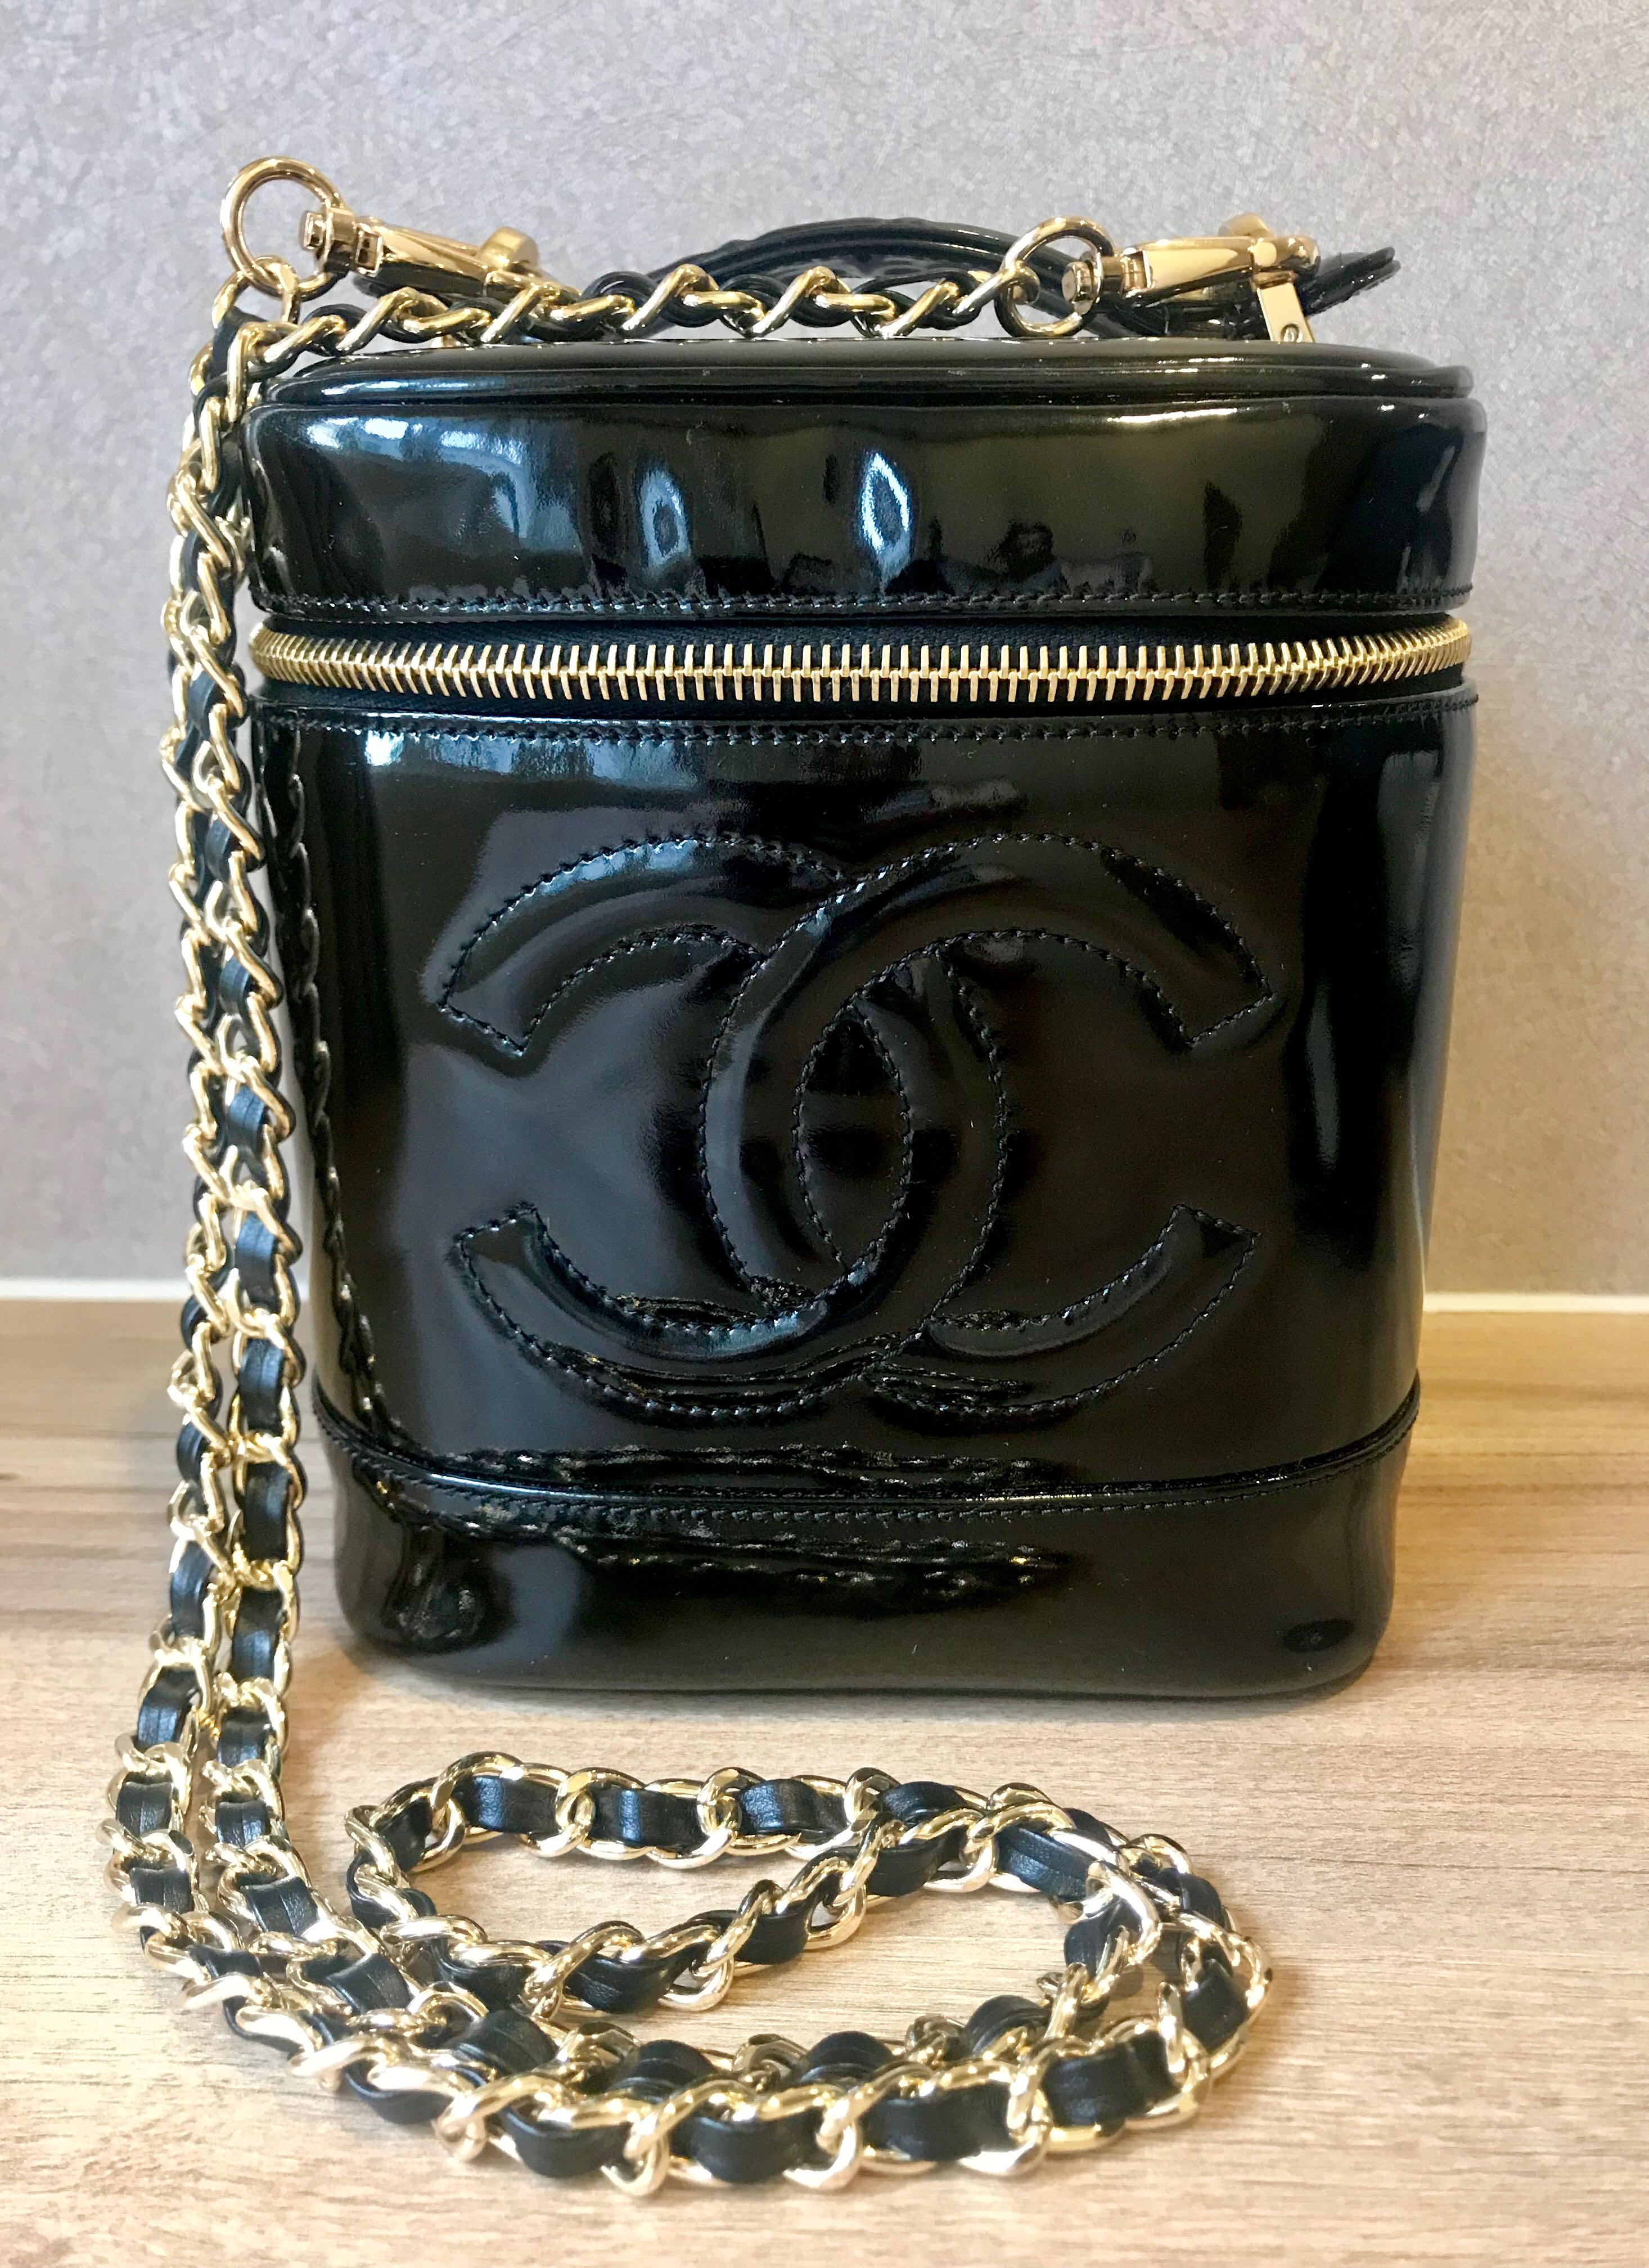 343740f6666987 Vintage Chanel Patent Leather Vanity Case, Luxury, Bags & Wallets on  Carousell